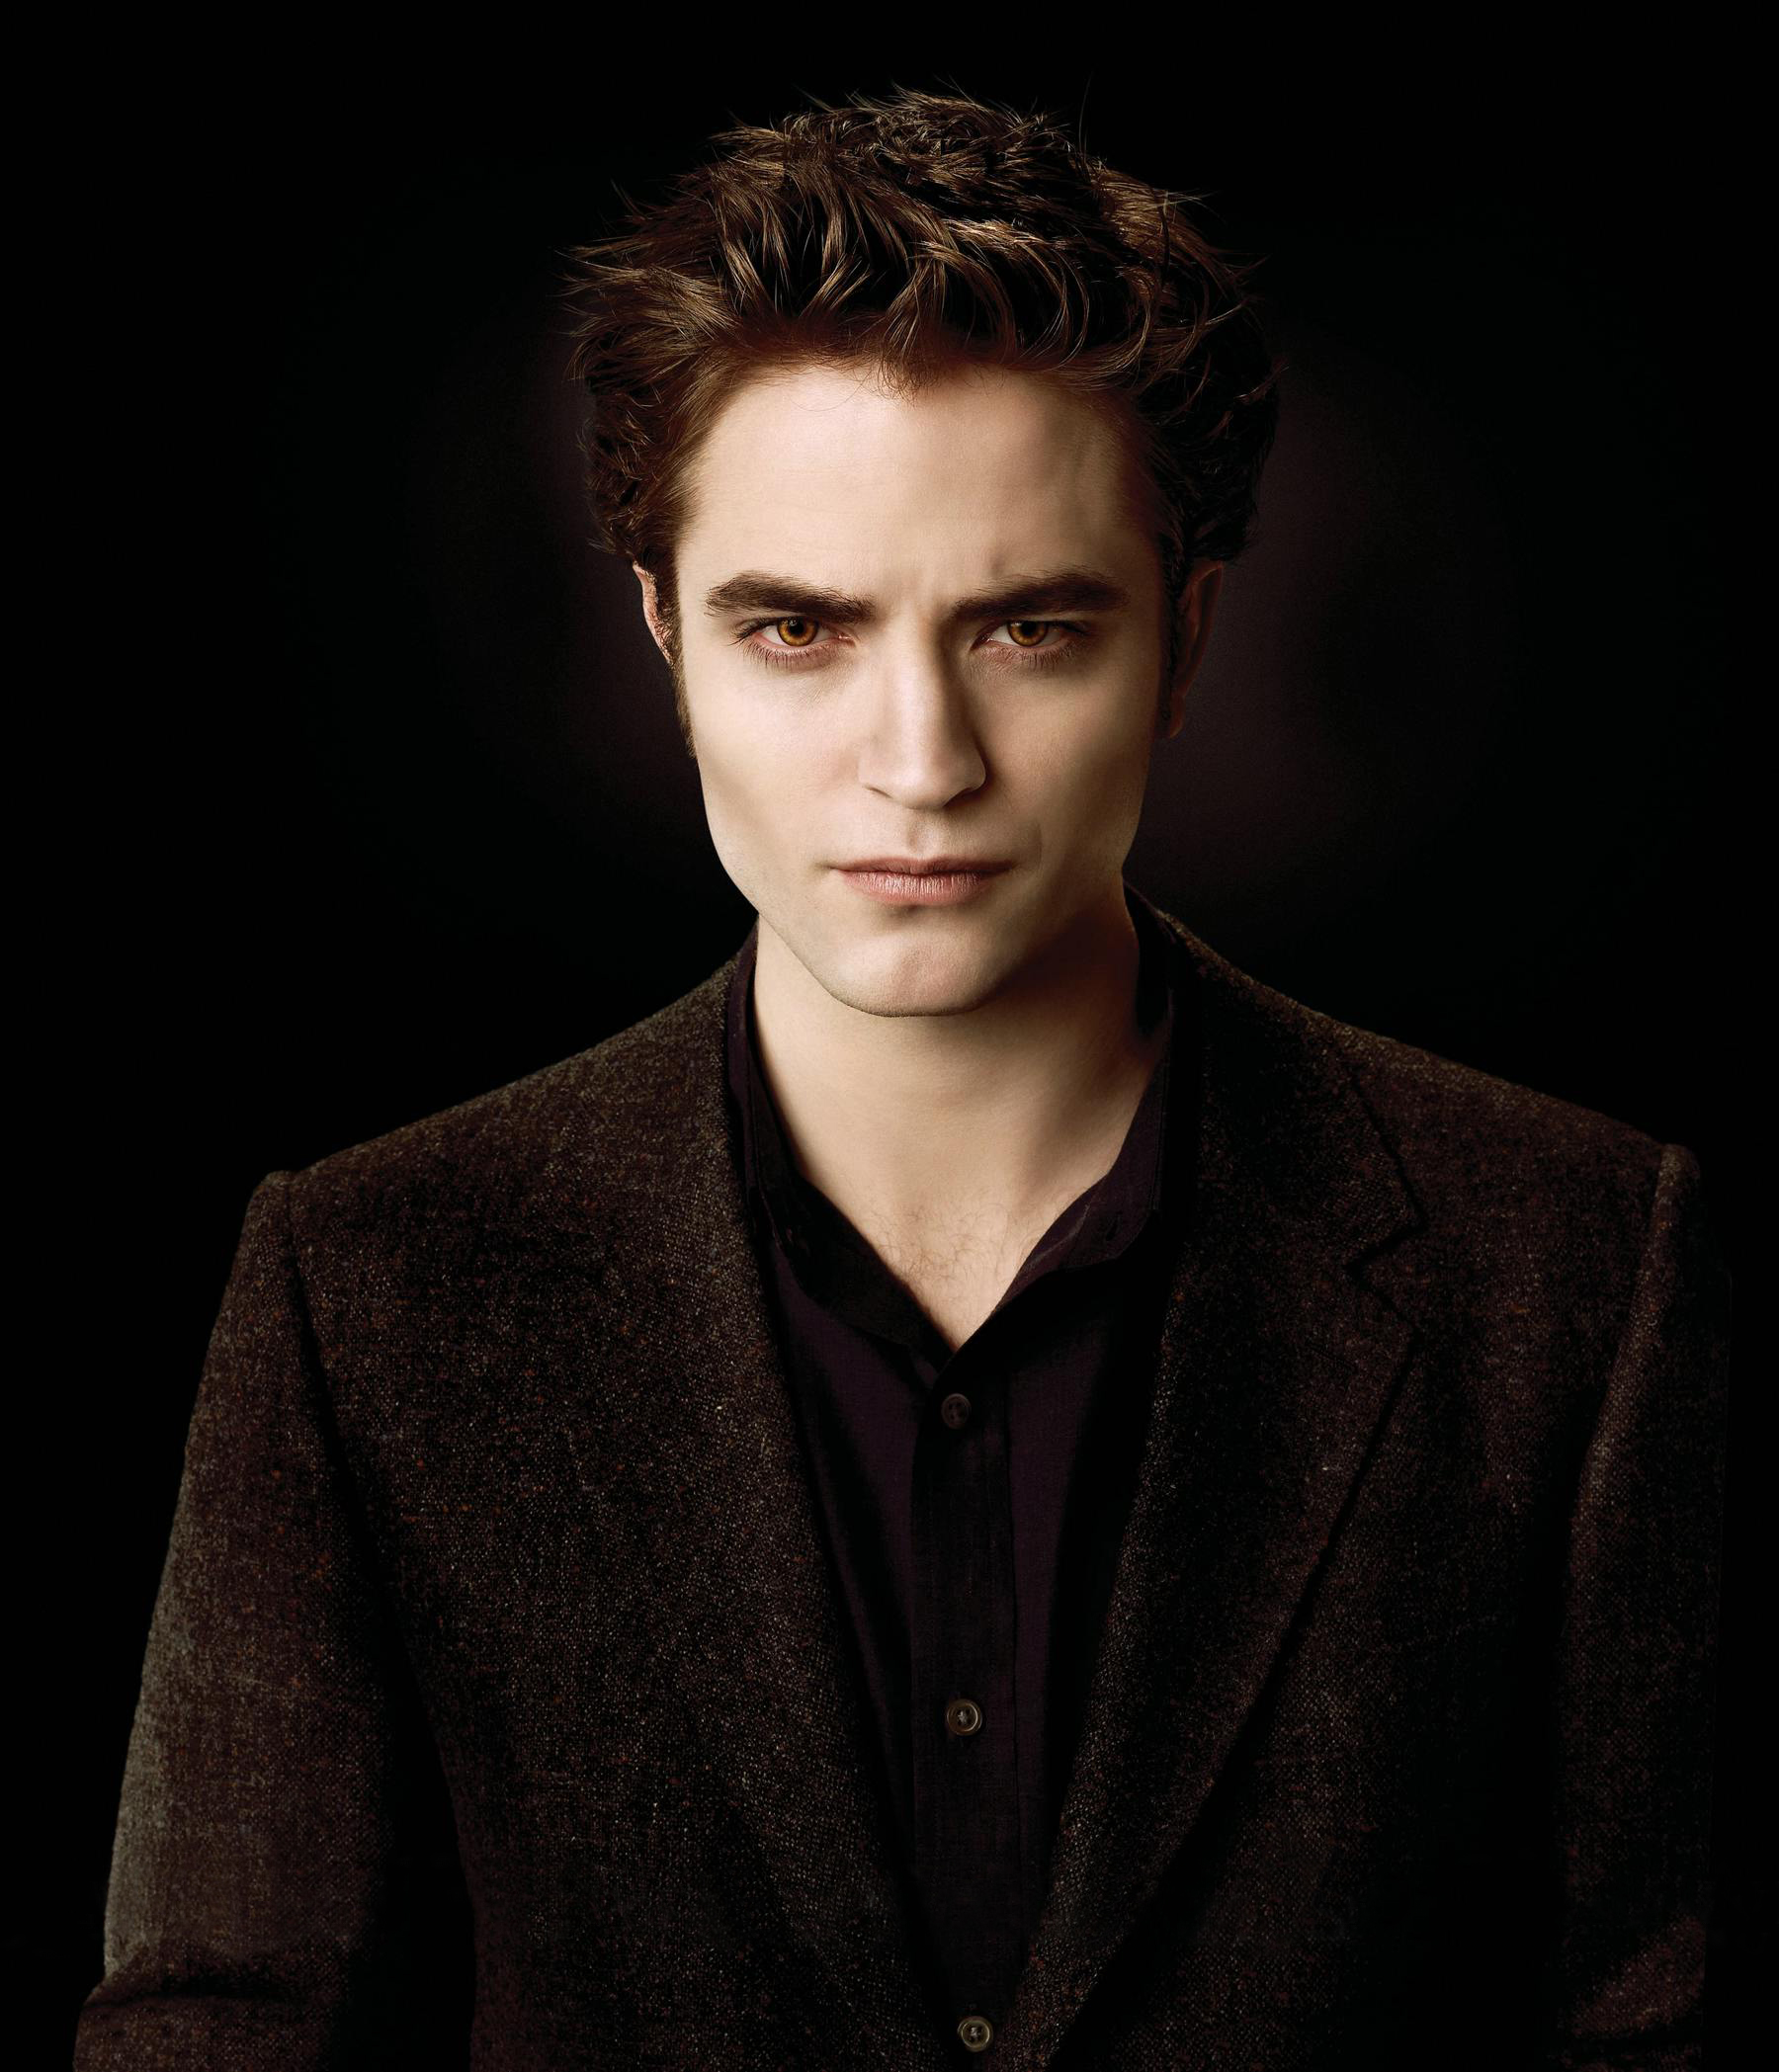 Edward edward cullen photo 30928087 fanpop Twilight edward photos